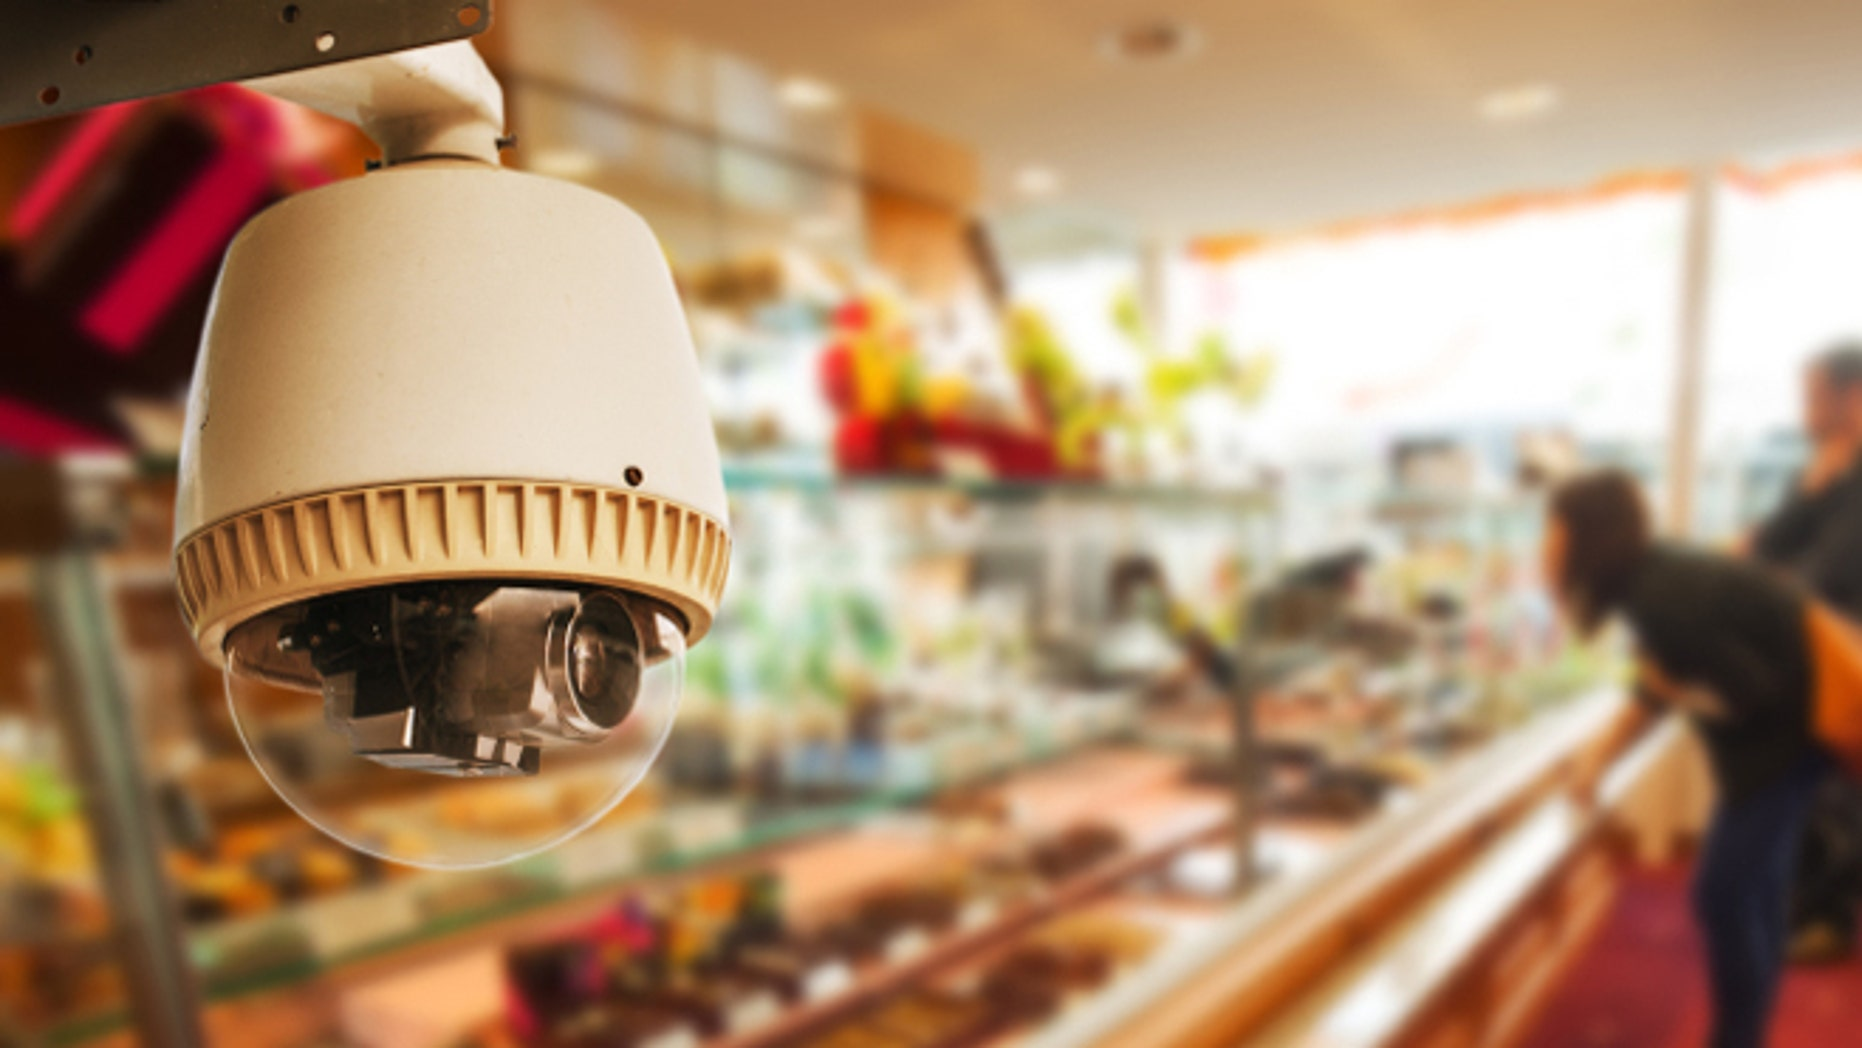 A Yelp reviewer may have been caught in a lie by restaurant surveillance footage.